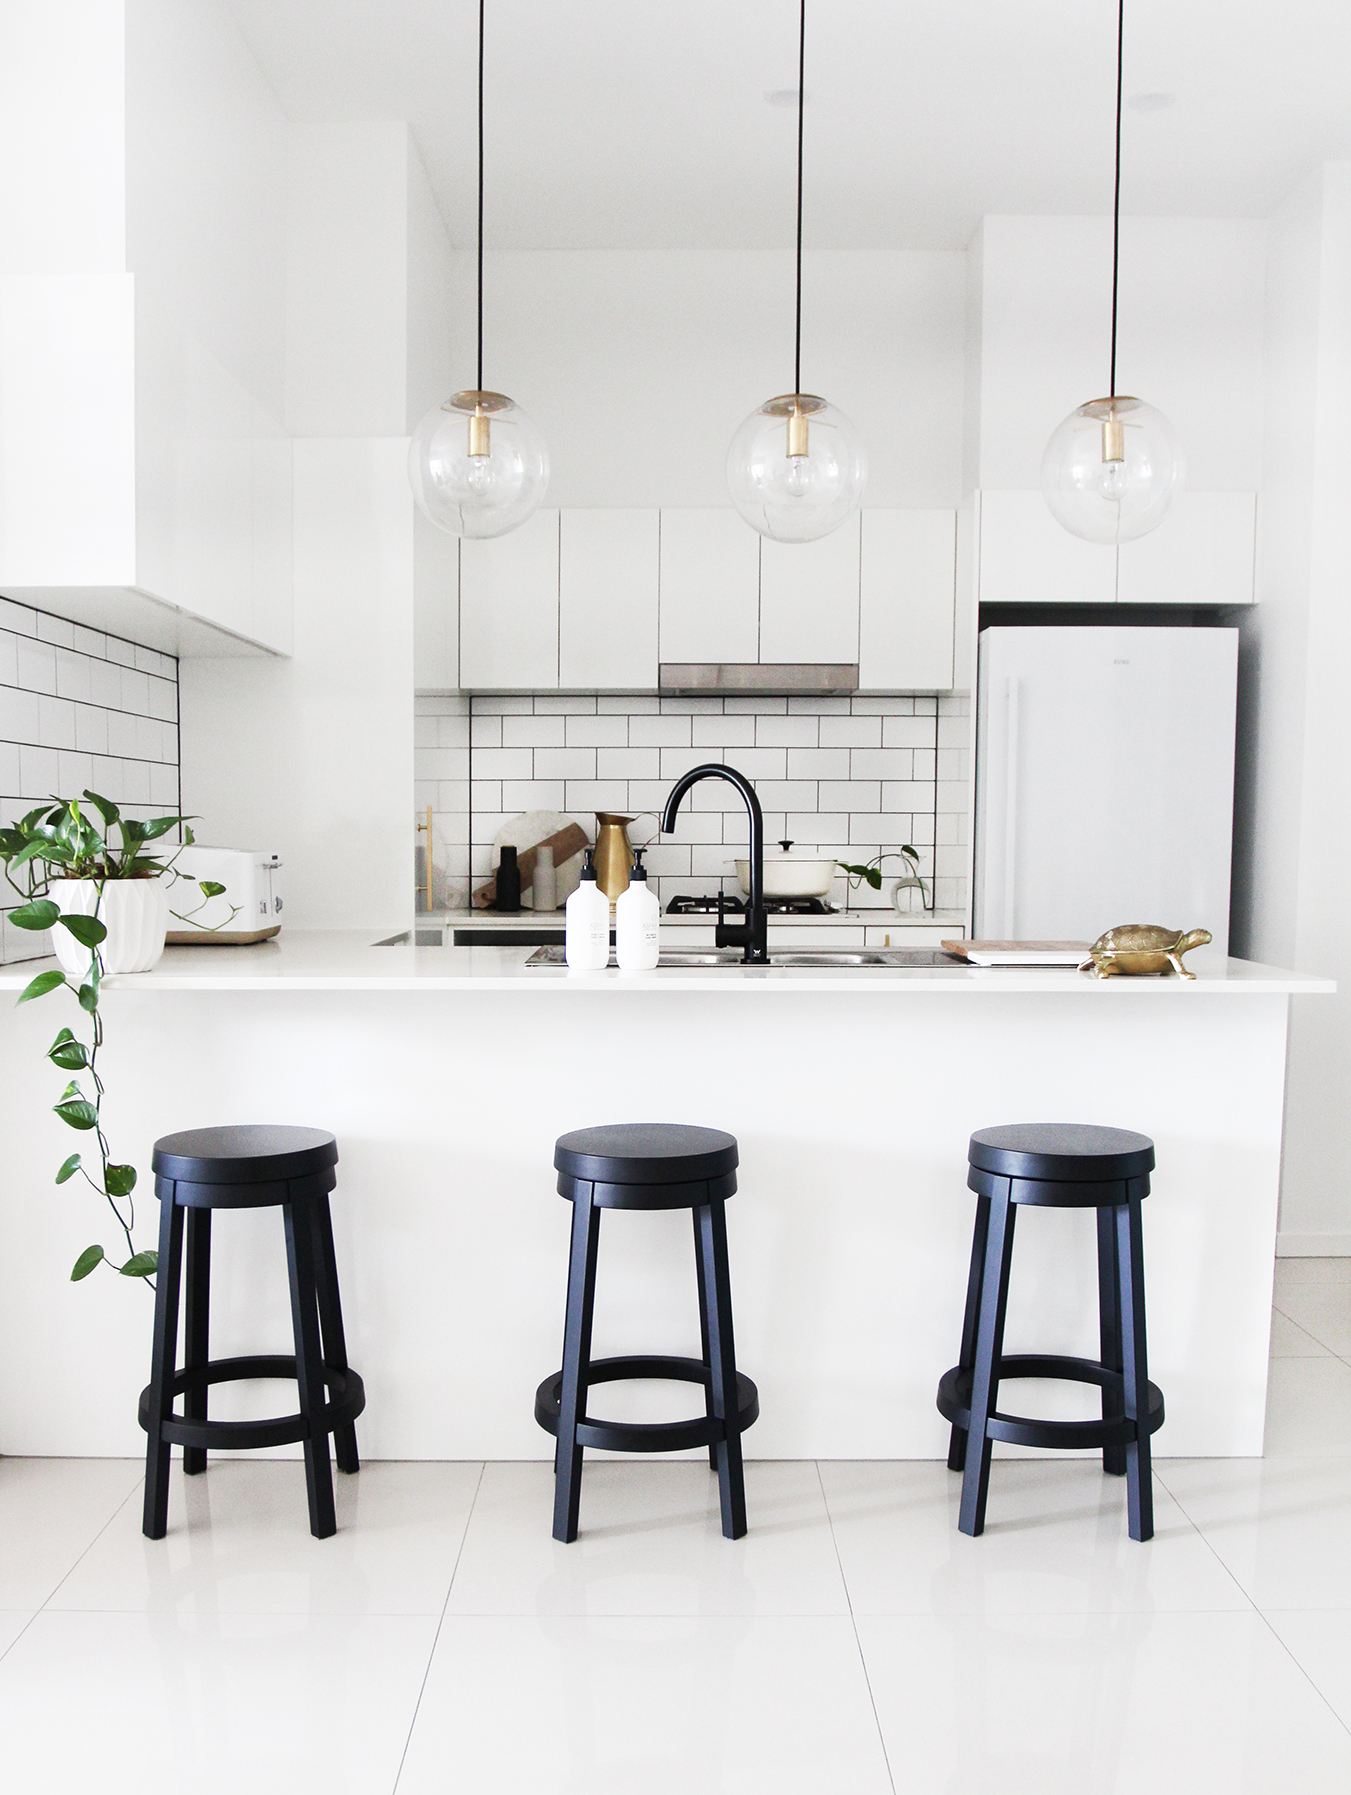 Loni Parker Kitchen_Adore Home Magzine Blog_1.jpg